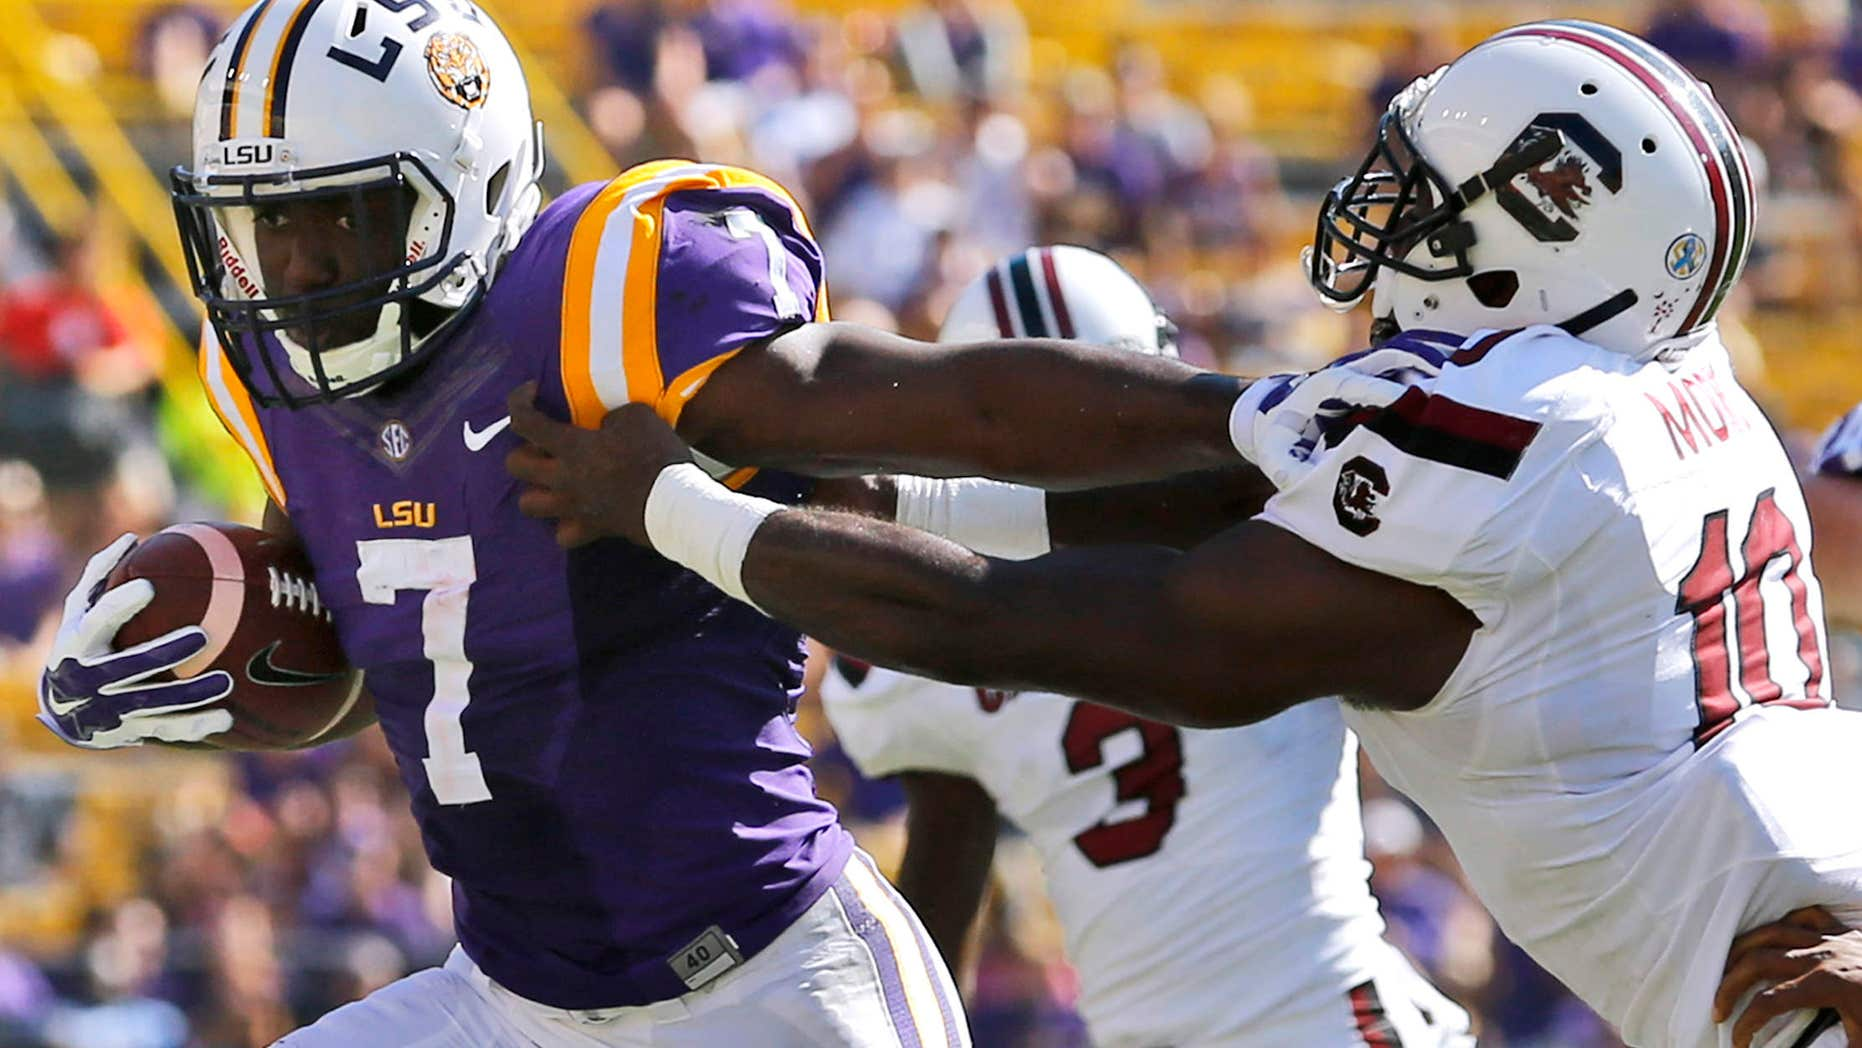 Oct. 10, 2015: LSU running back Leonard Fournette (7) stiff arms South Carolina linebacker Skai Moore (10) during the first half of an NCAA college football game in Baton Rouge, La.